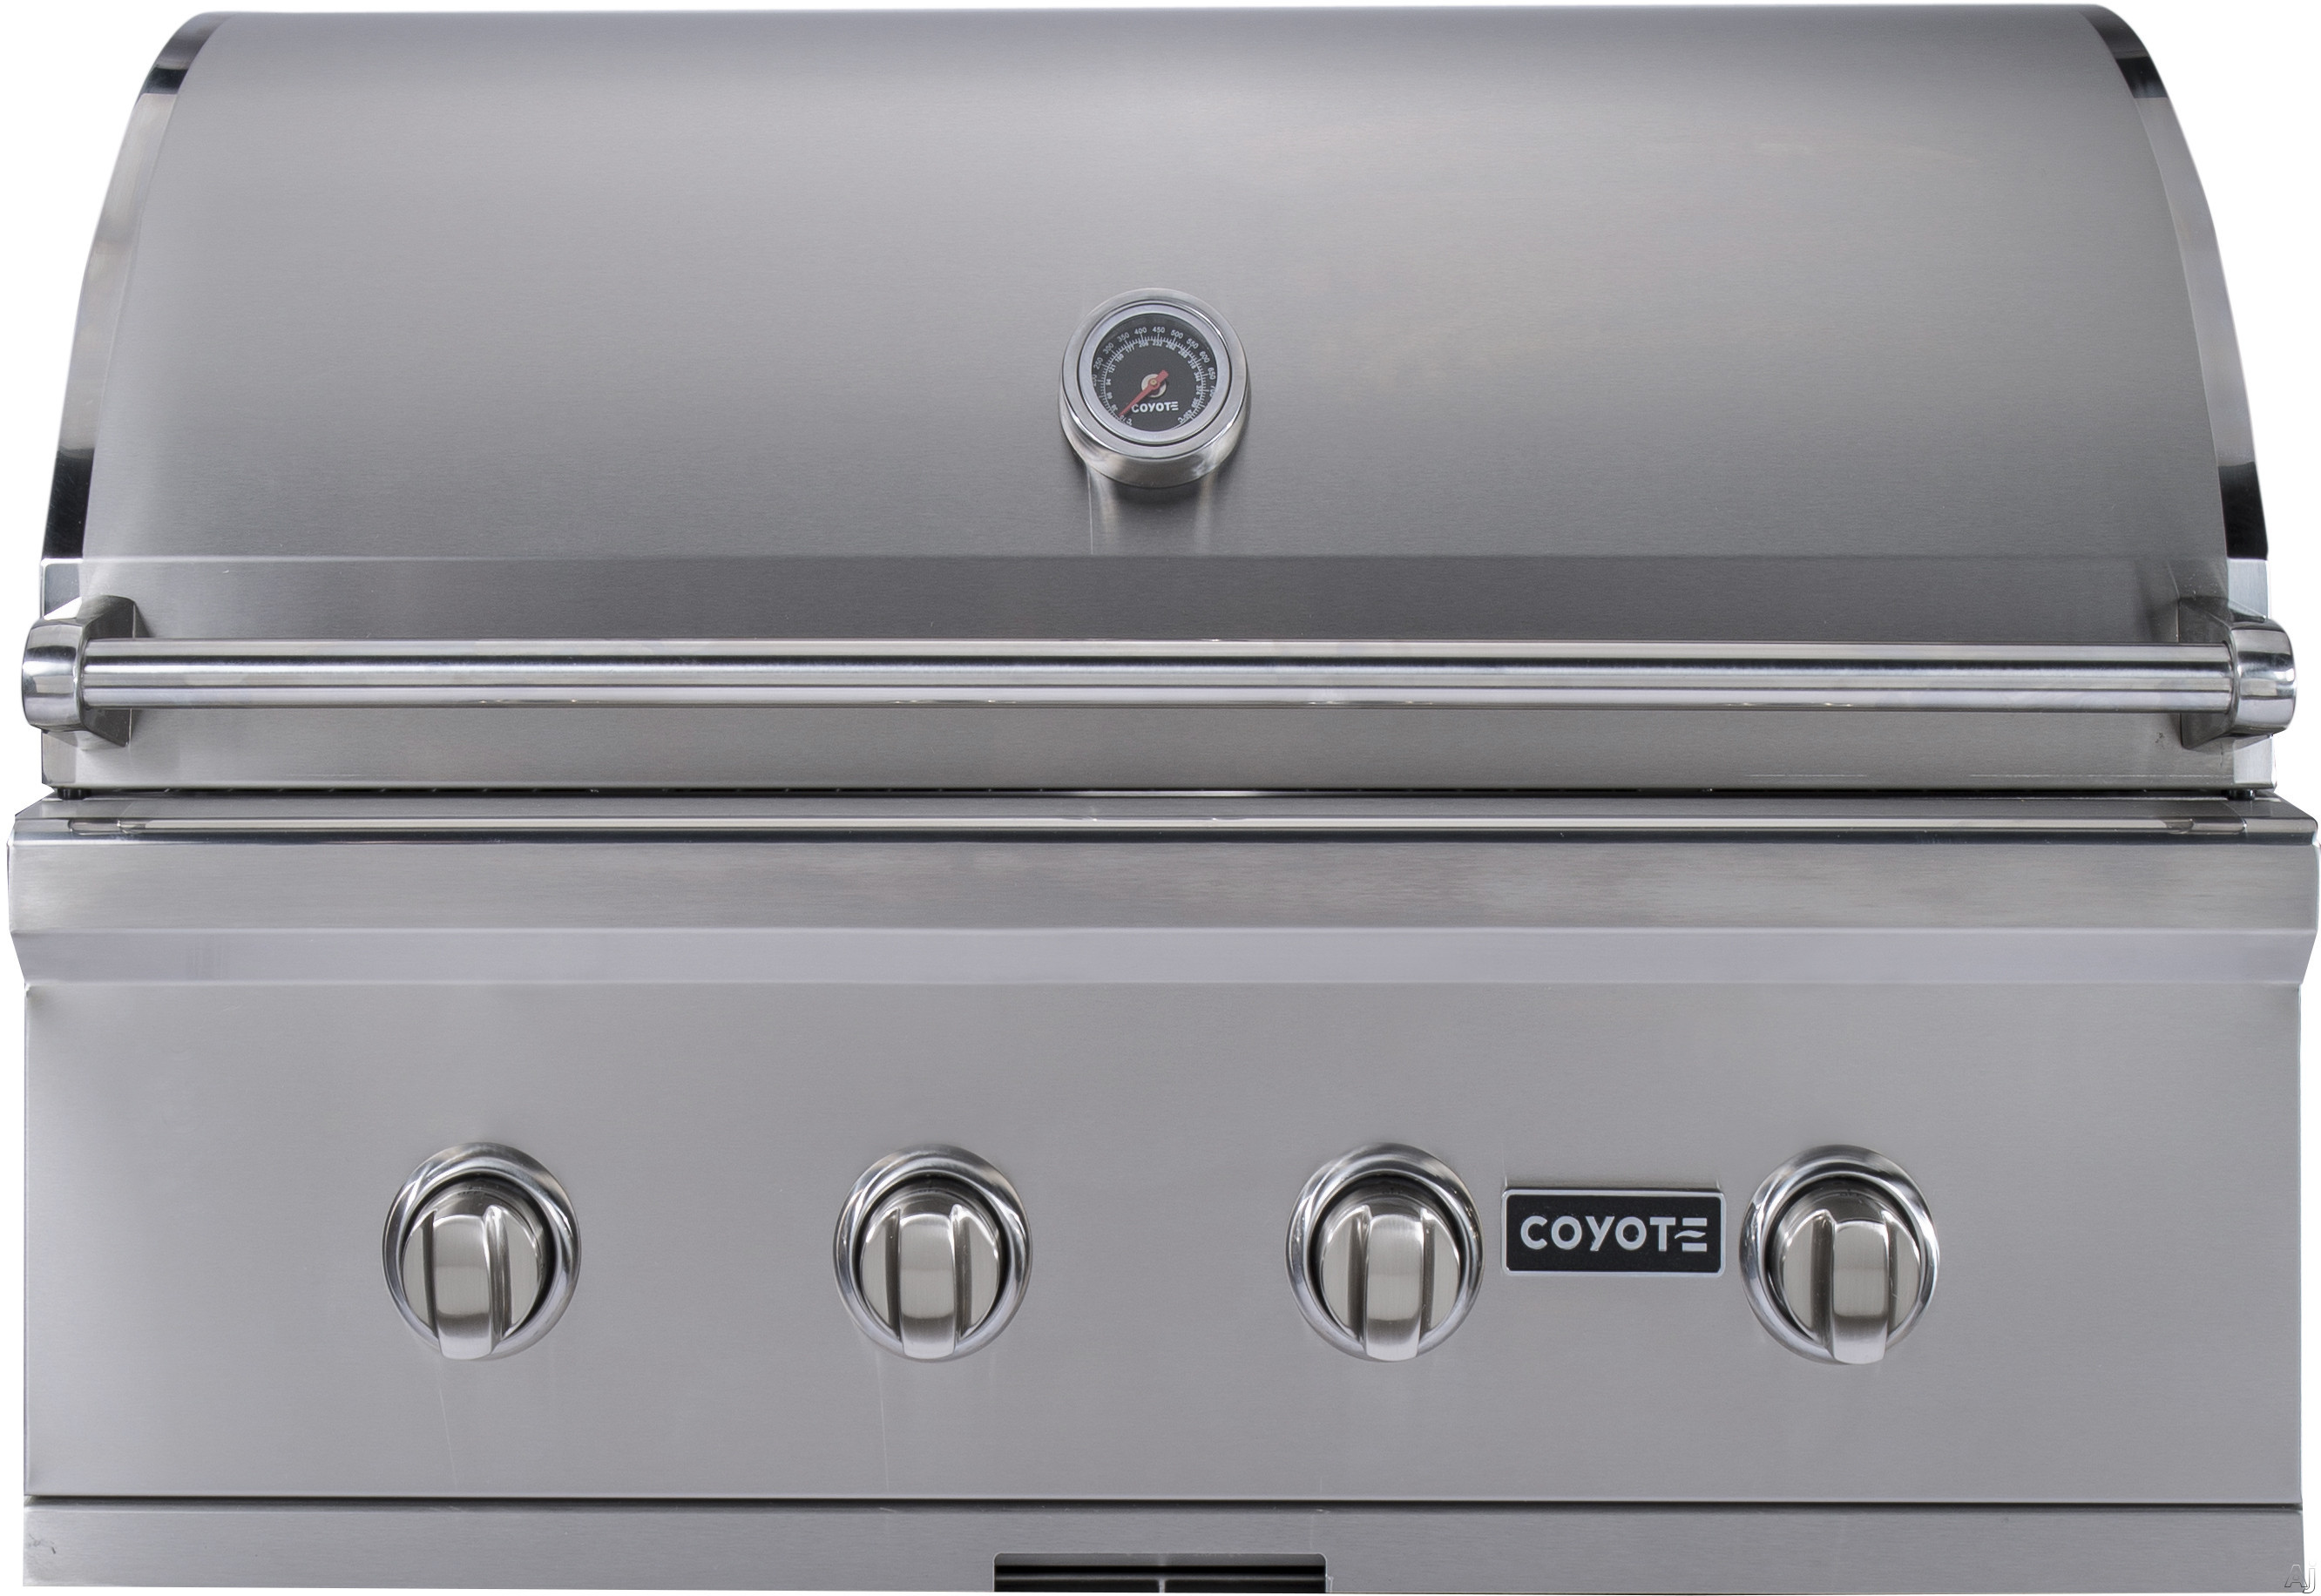 Coyote C-Series CCX4LP 36 Inch Built-in Gas Grill with 875 sq. in. Cooking Area, 80,000 Total BTU, 4 High Performance iBurners, Stainless Steel Grates, Warming Rack and Interior Grill Lights: Liquid P